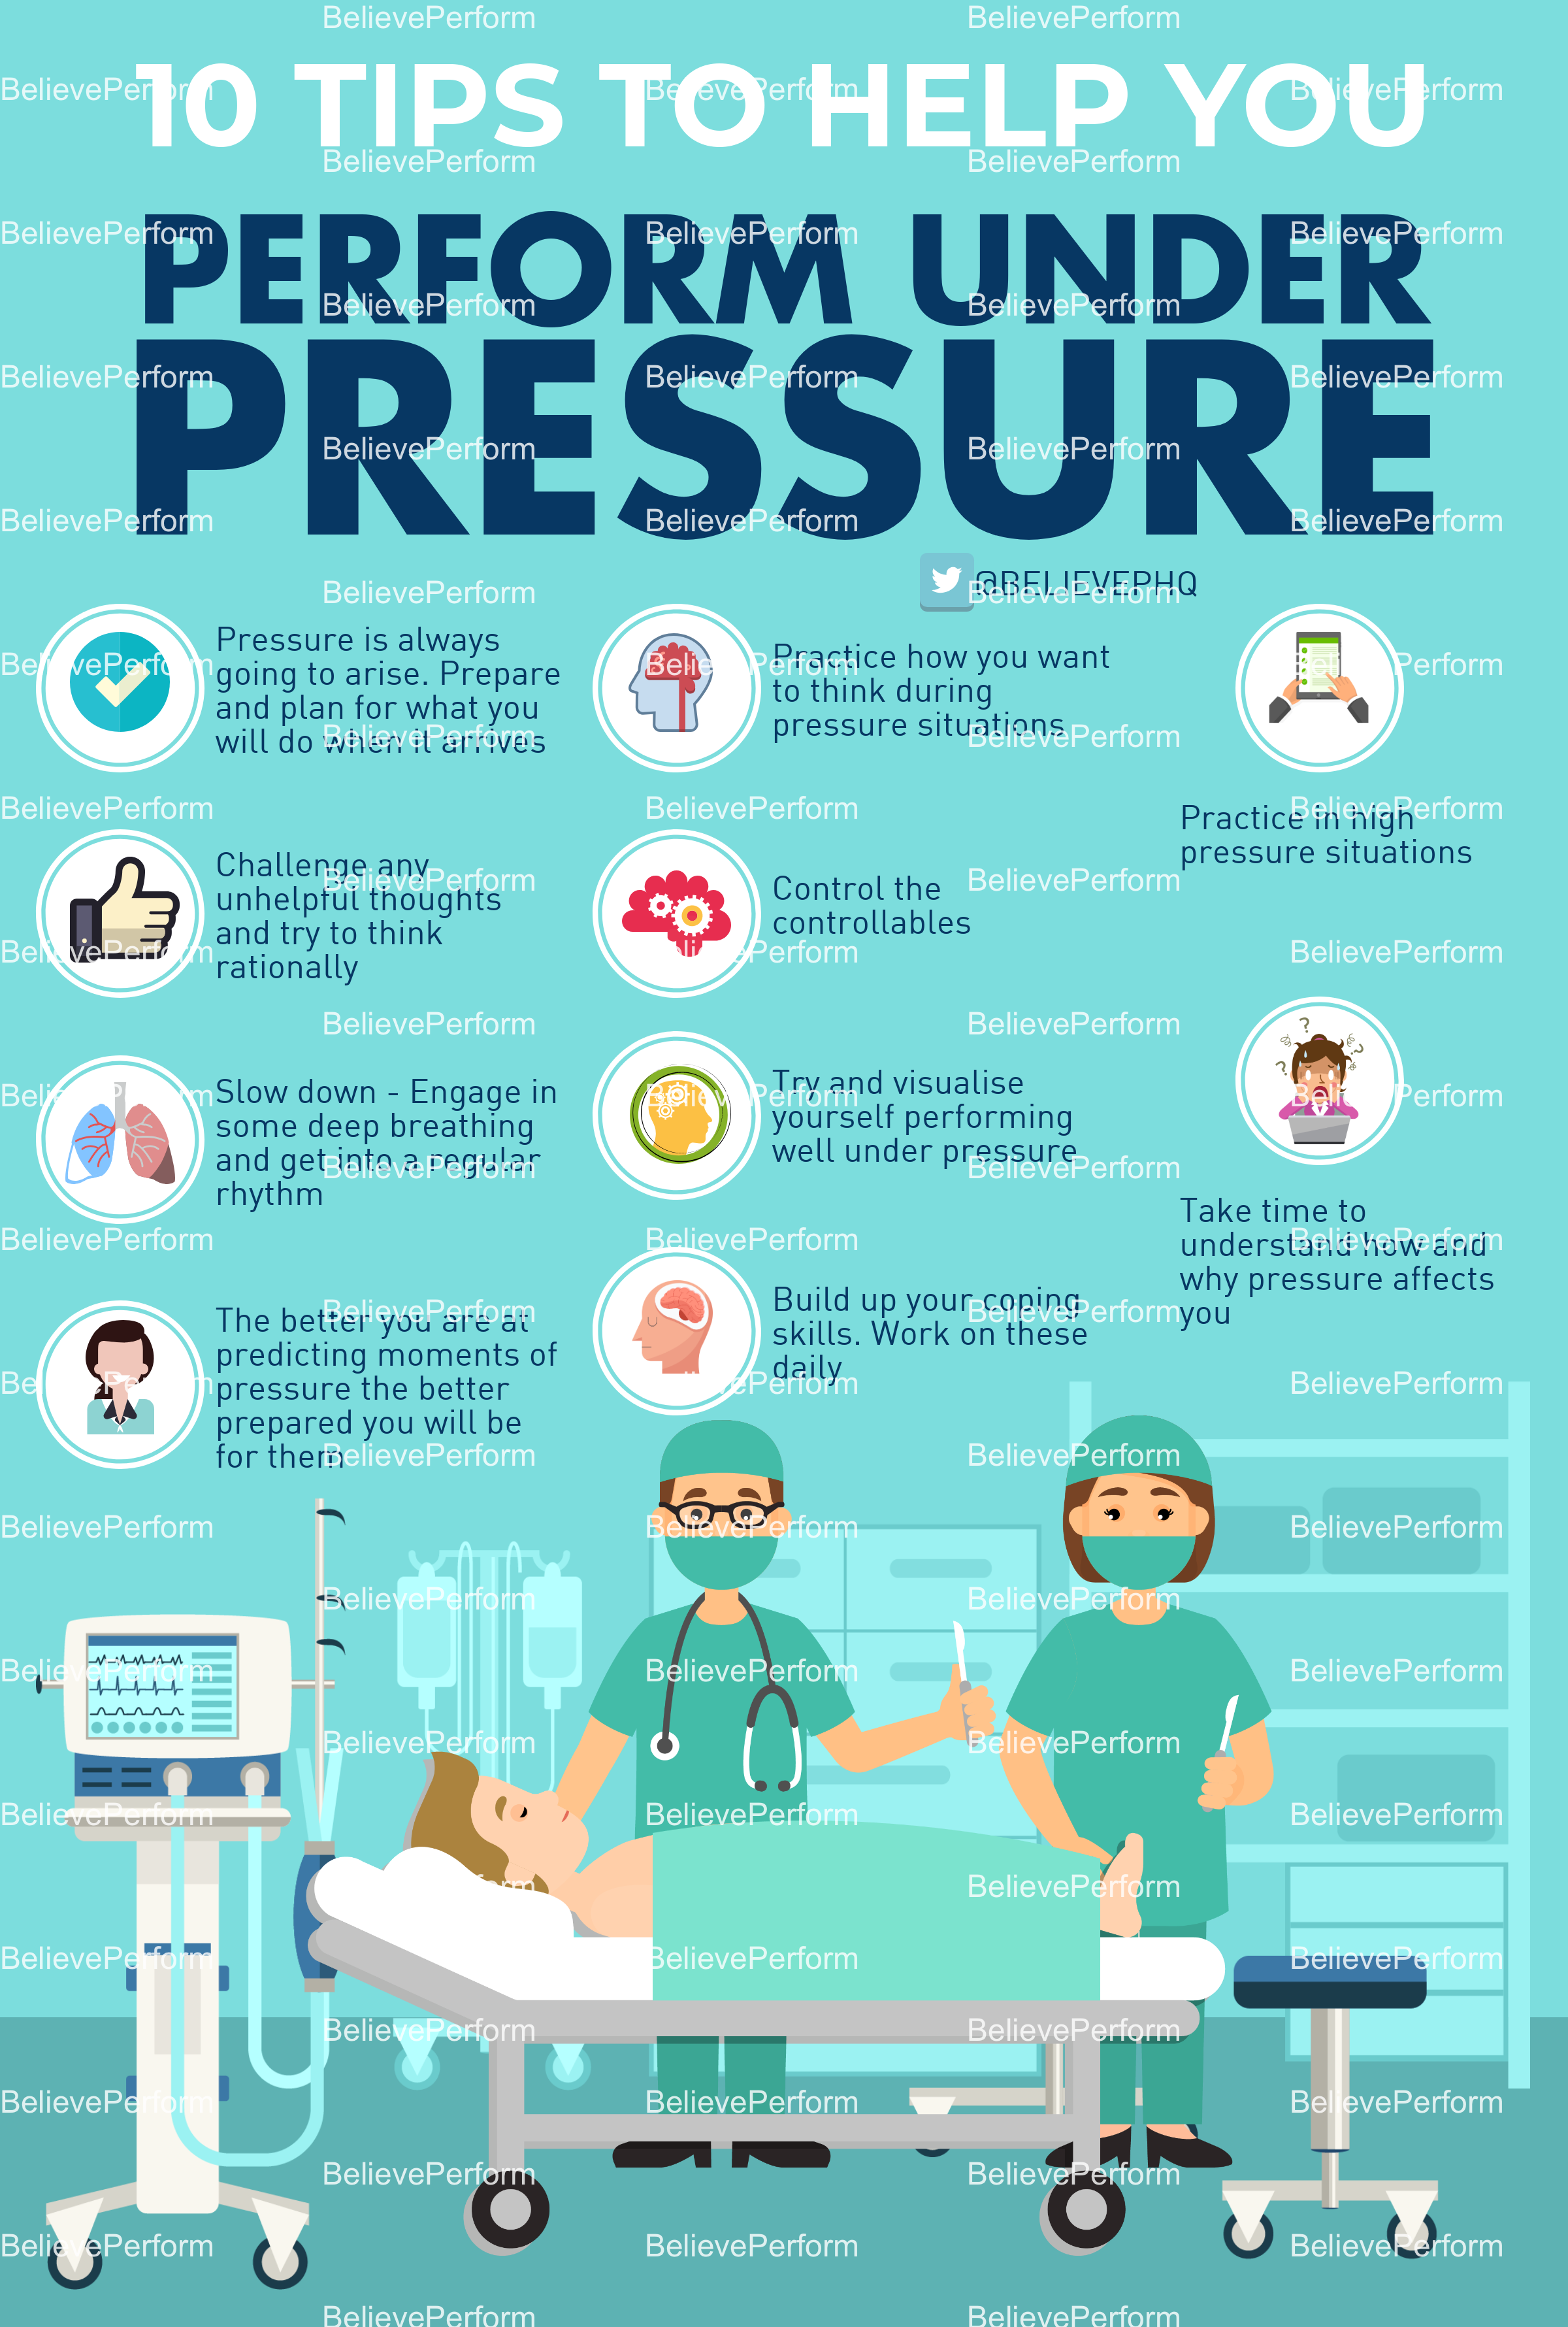 10 tips to help you perform under pressure